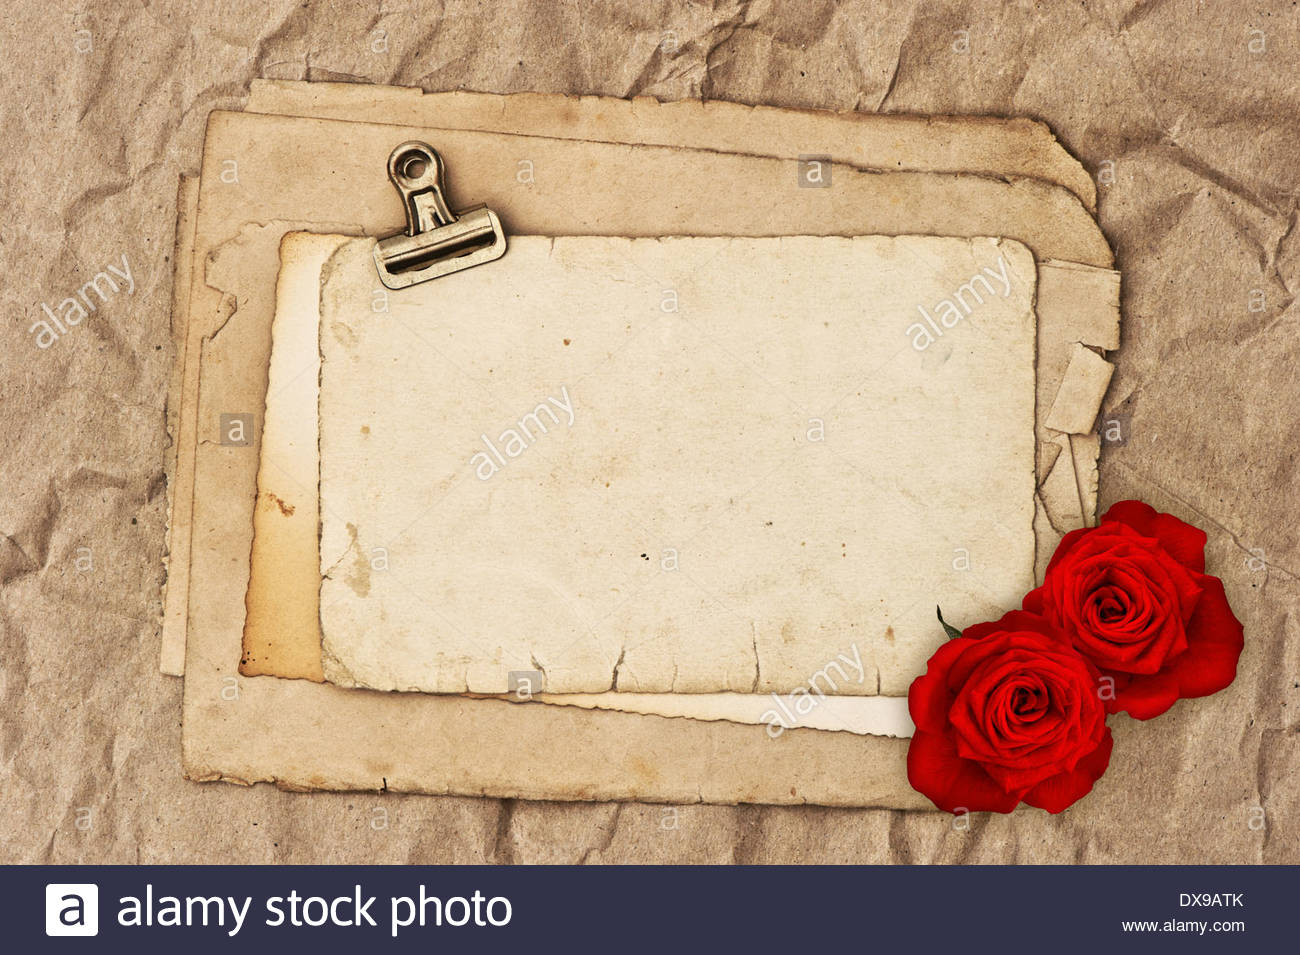 old blank paper and two rose flowers grunge vintage background 1300x955